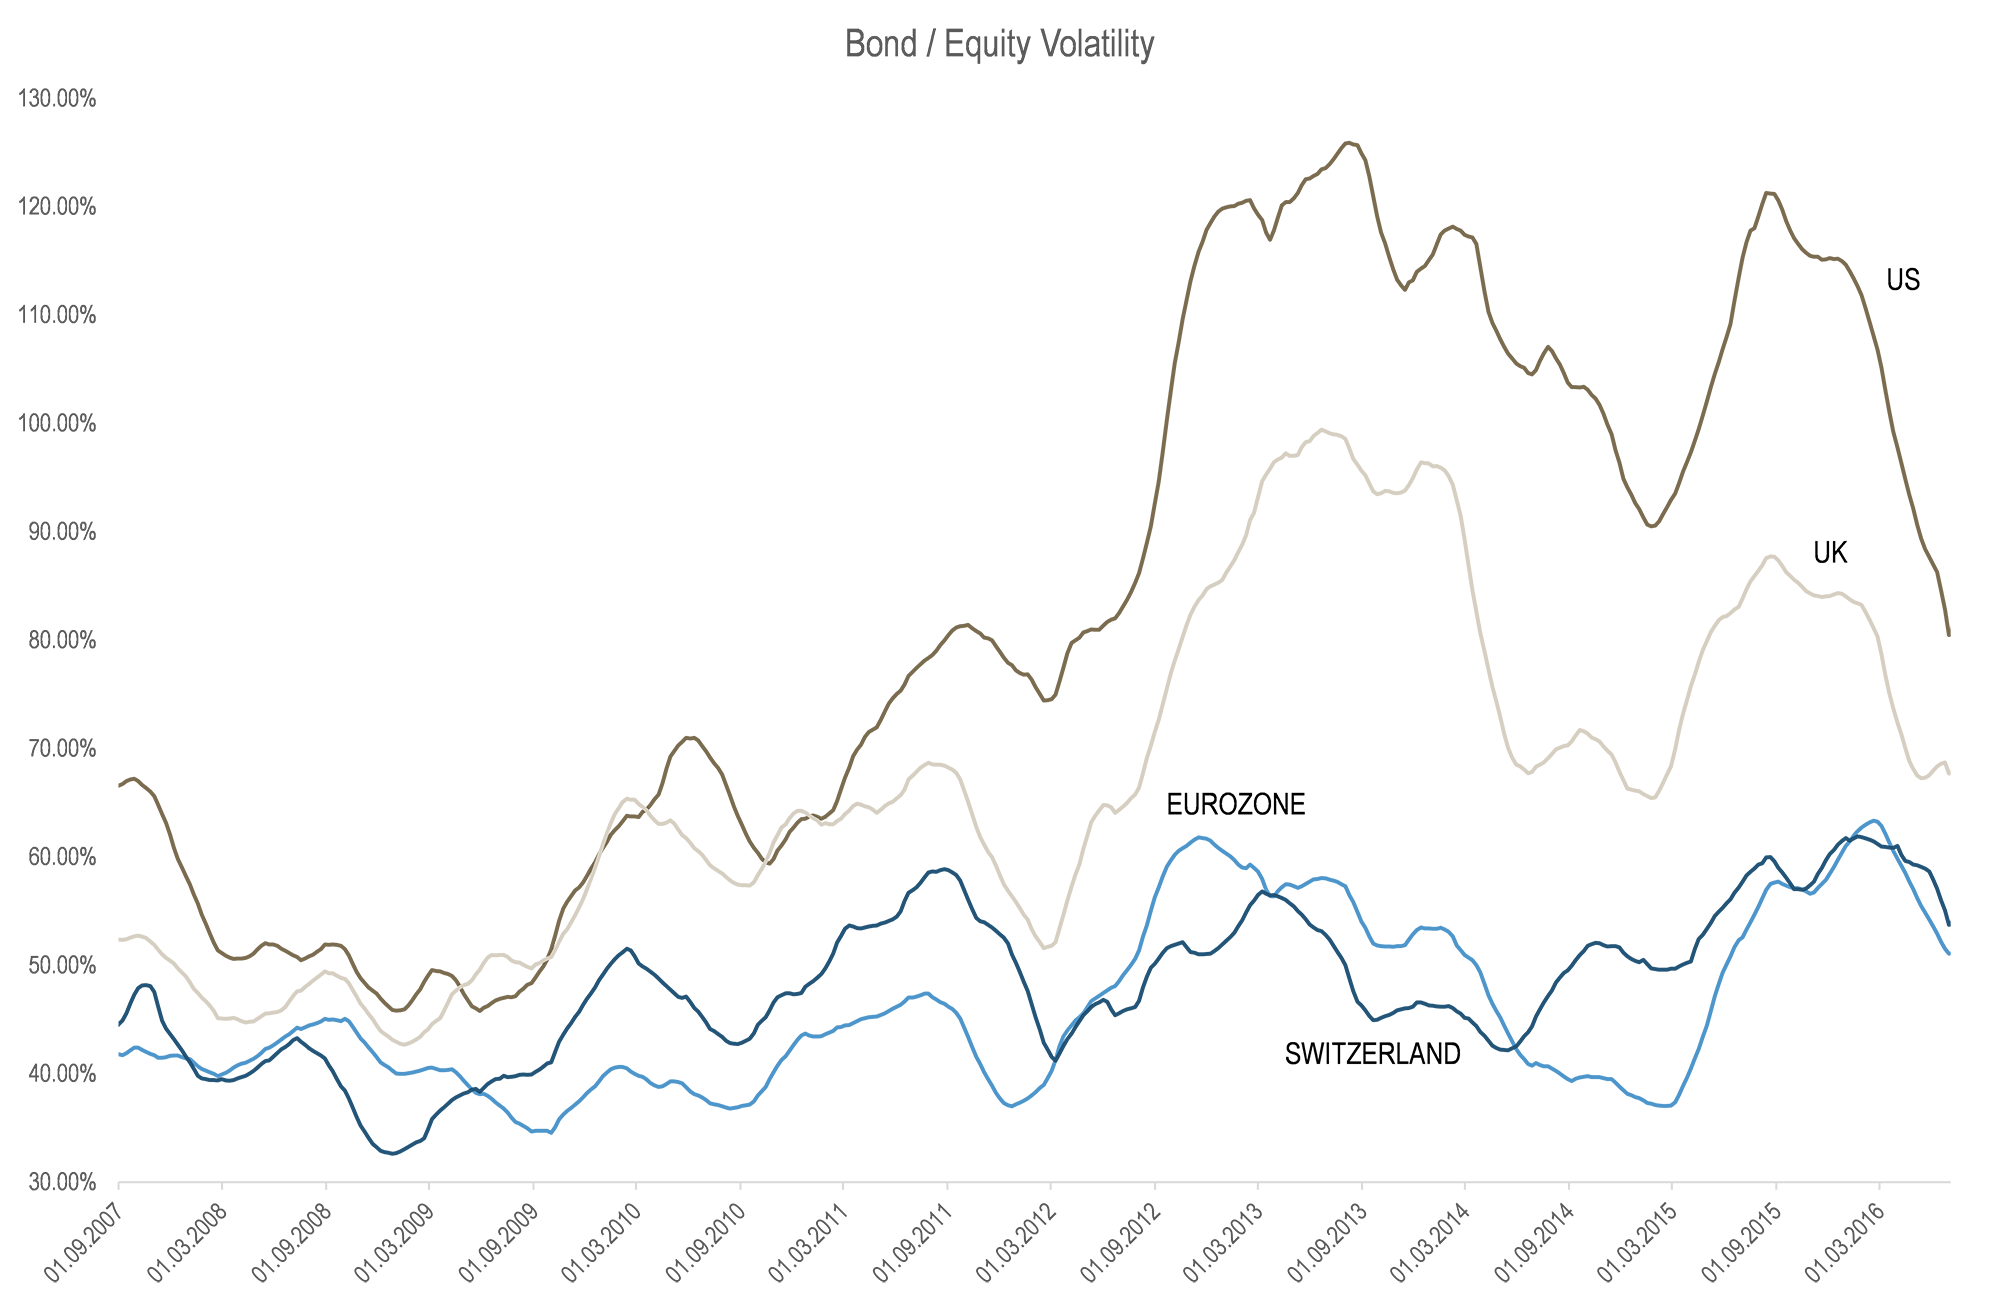 Bond Equity Volatility